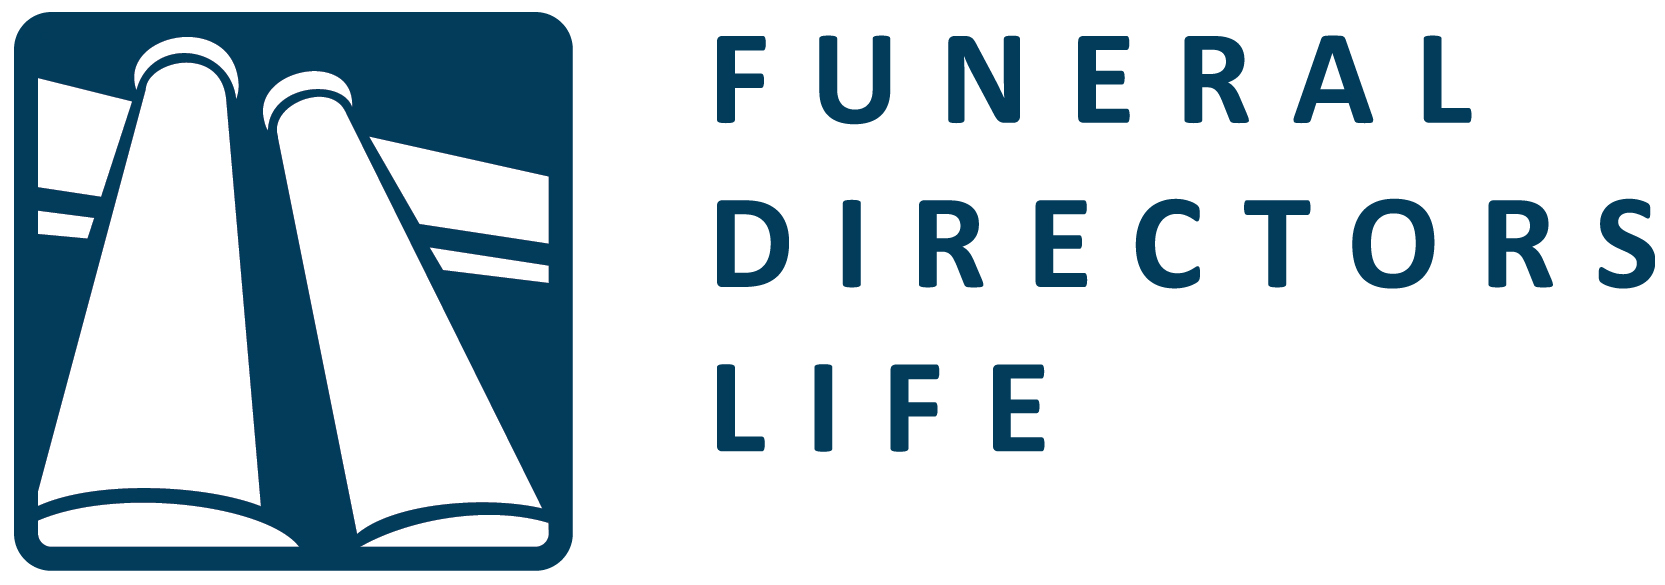 Minnesota Funeral Directors Association